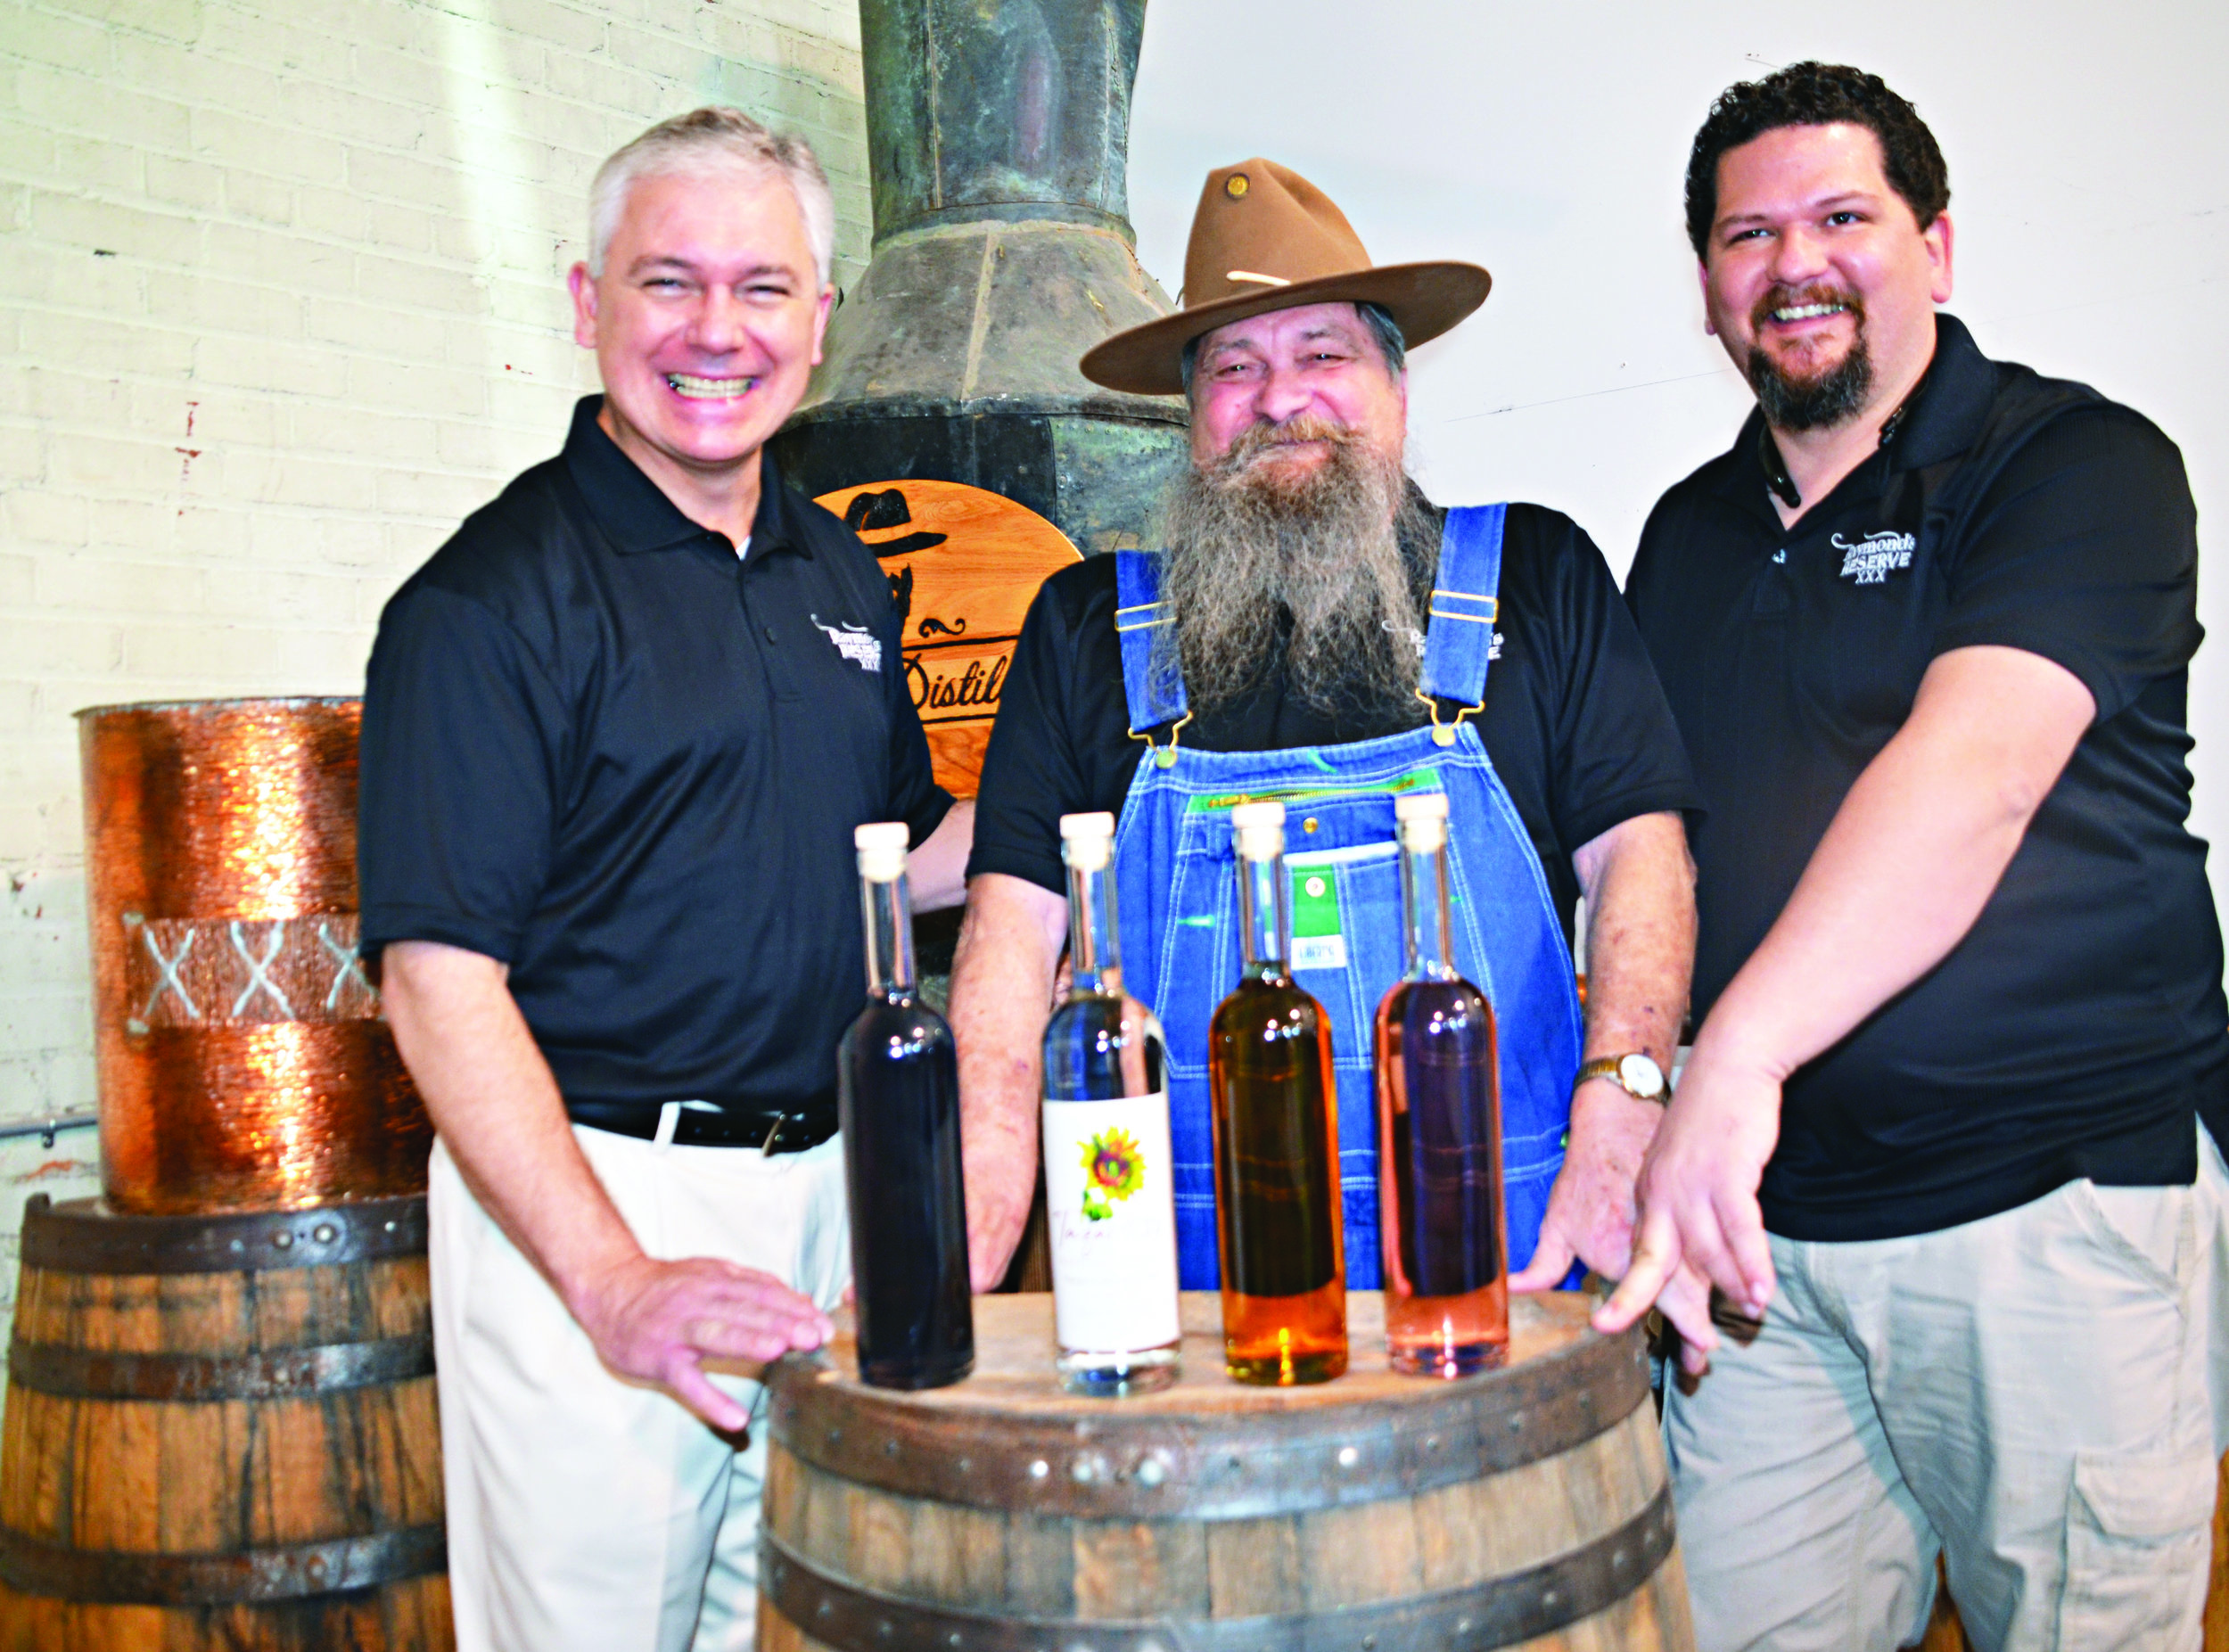 Left to right Vann Brown Partner and Director of Marketing, Raymond Butler Master Distiller, and Chuck Butler Founder